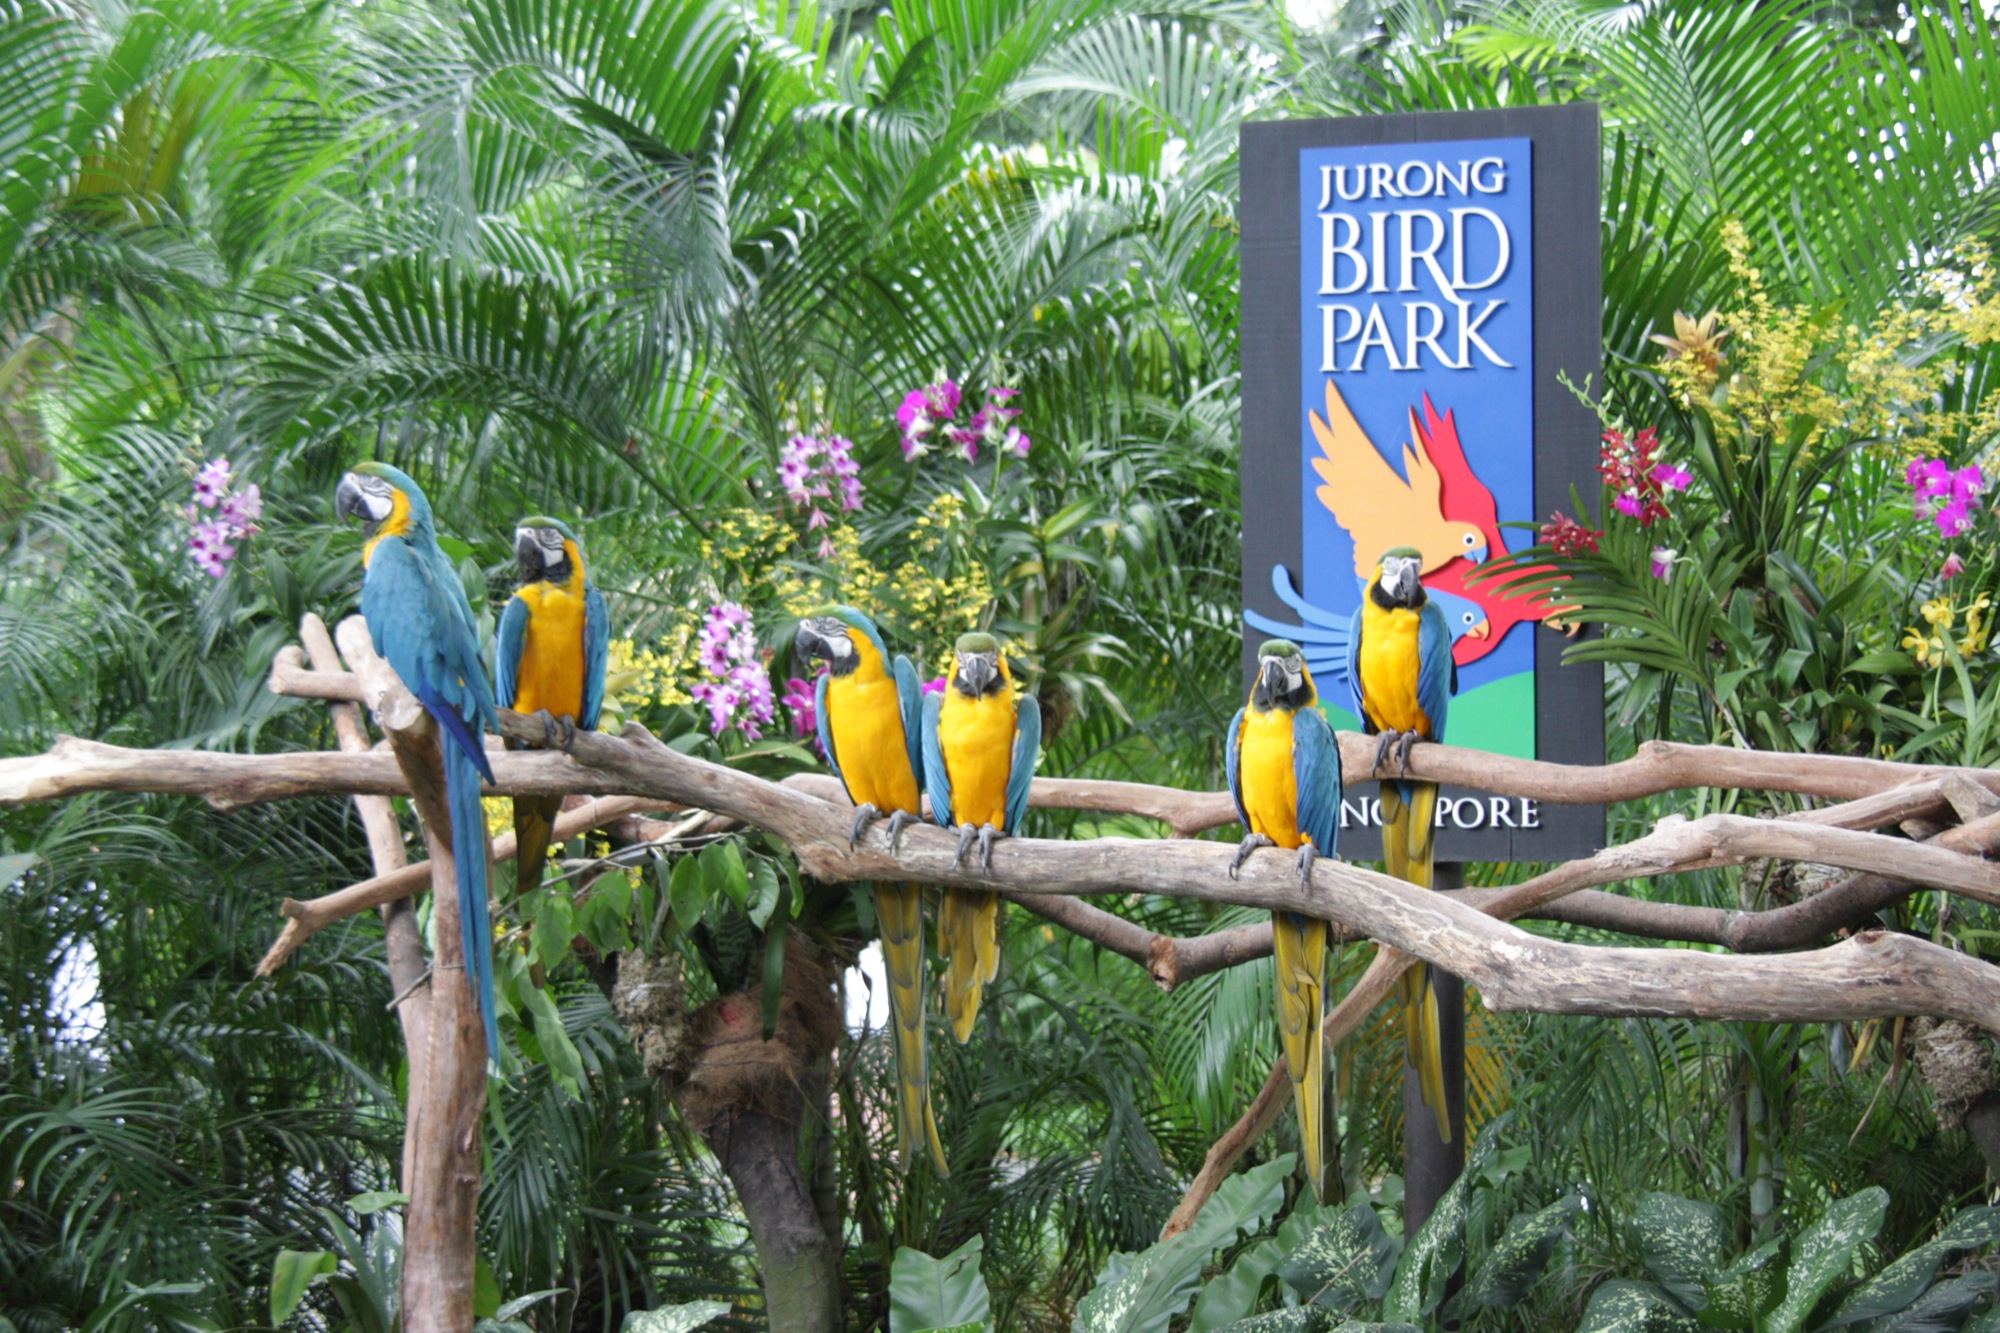 The Jurong Bird Park